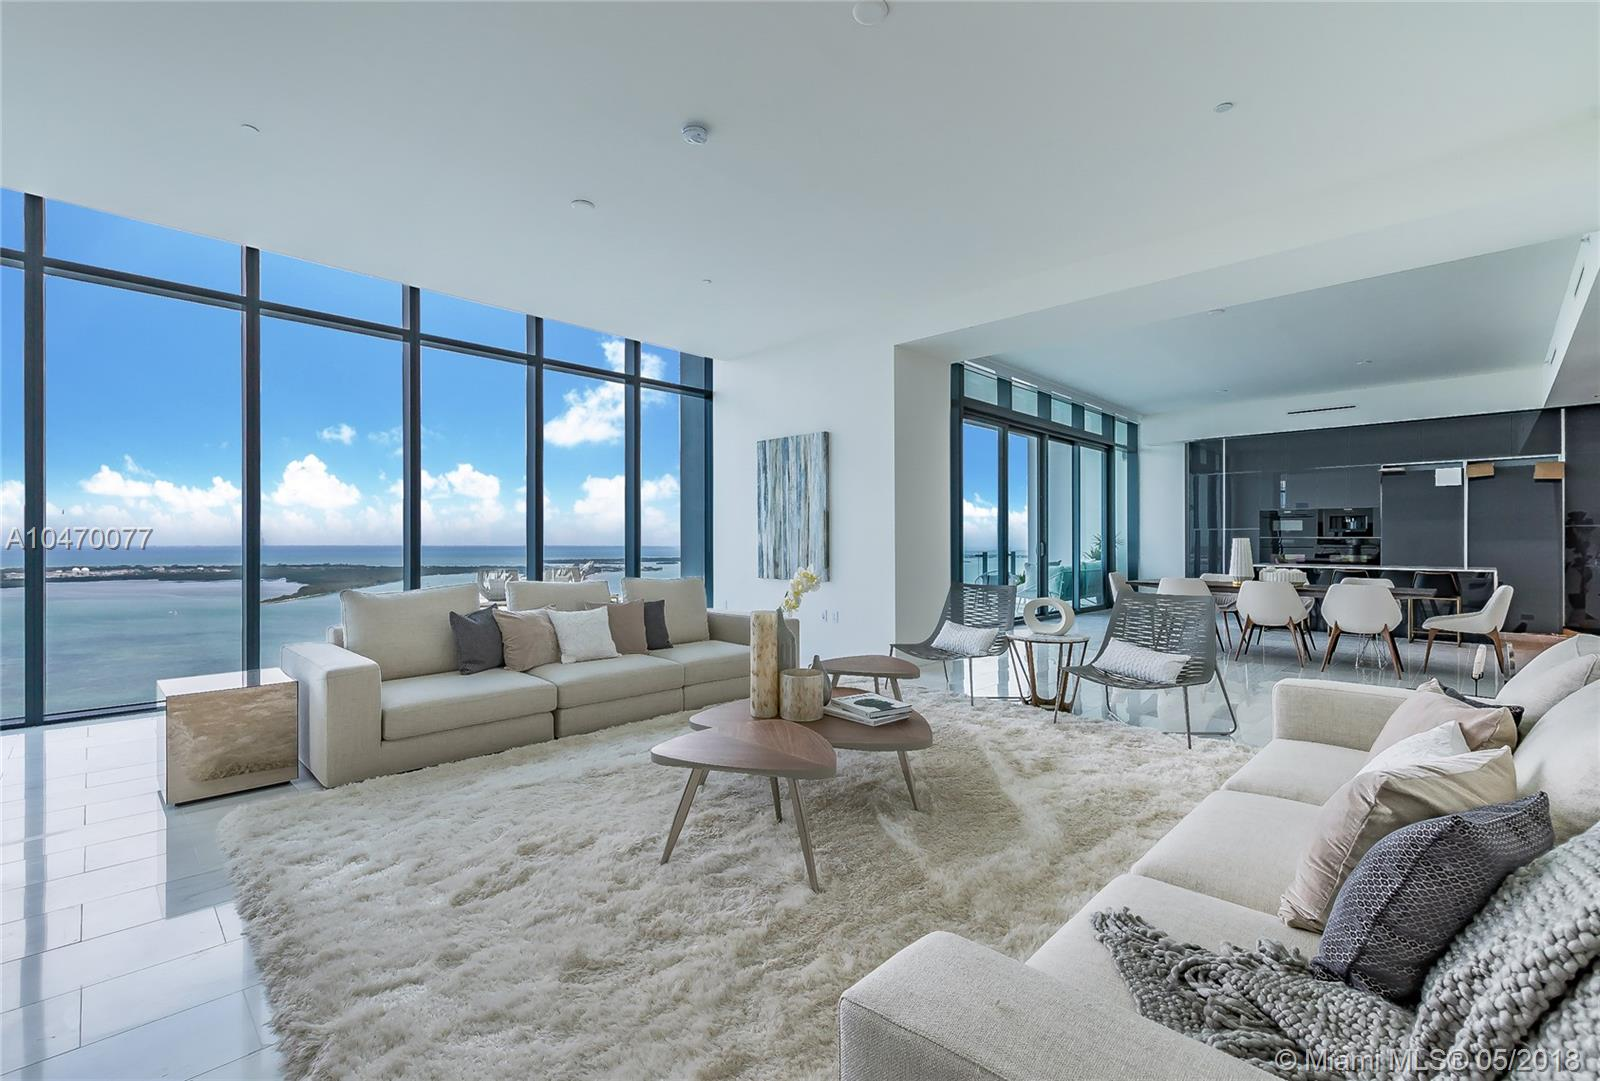 Stunning Designer appointed turnkey Lower Penthouse residence with incredible unobstructed  views of Biscayne Bay, Miami skyline, and the Ocean - with East, West, North & South views.  Fully furnished & ready to show to your most discriminating Buyers,  Featuring a spectacular Master Suite, with built-in Italian closets & extra tall floor to ceiling windows.  Marble flooring throughout, 7-foot Italian entry doors, and Poliform kitchen cabinets.  Echo Brickell is a state of the art Smart building, designed by Carlos Ott + Yoo, 4000 sq ft fitness center, Infinity edge pools. Enjoy complimentary daily breakfast poolside, in-house chauffeur services, or the on call dog walkers.  Best Penthouse opportunity in all of Downtown Miami.